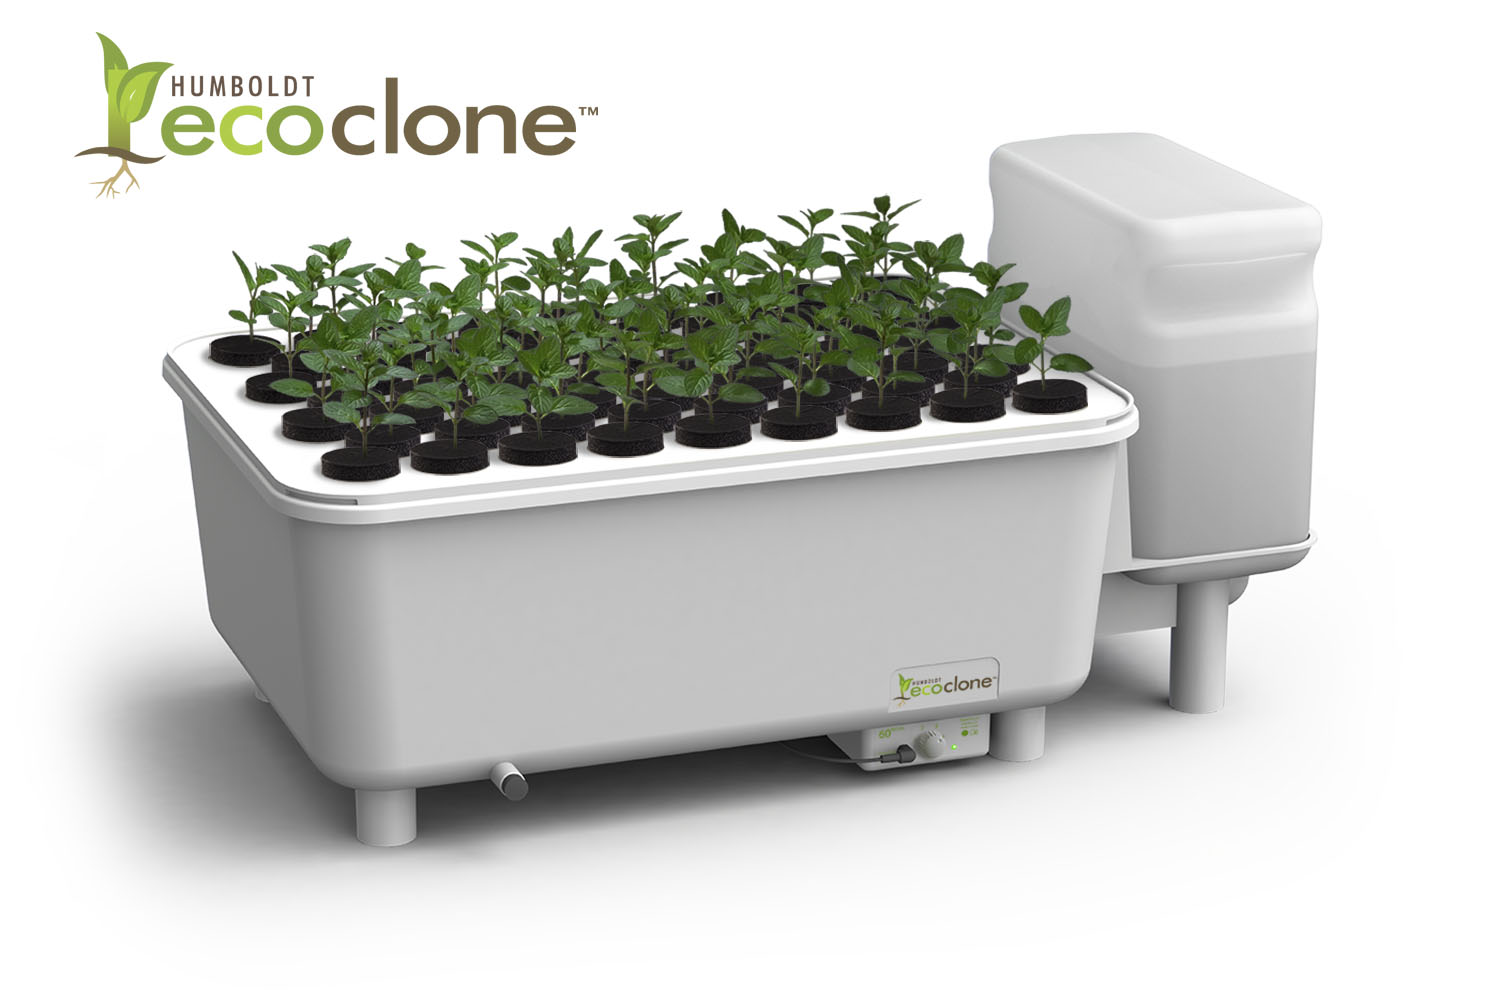 The Humboldt-Ecoclone ultrasonic fog plant propagation system.